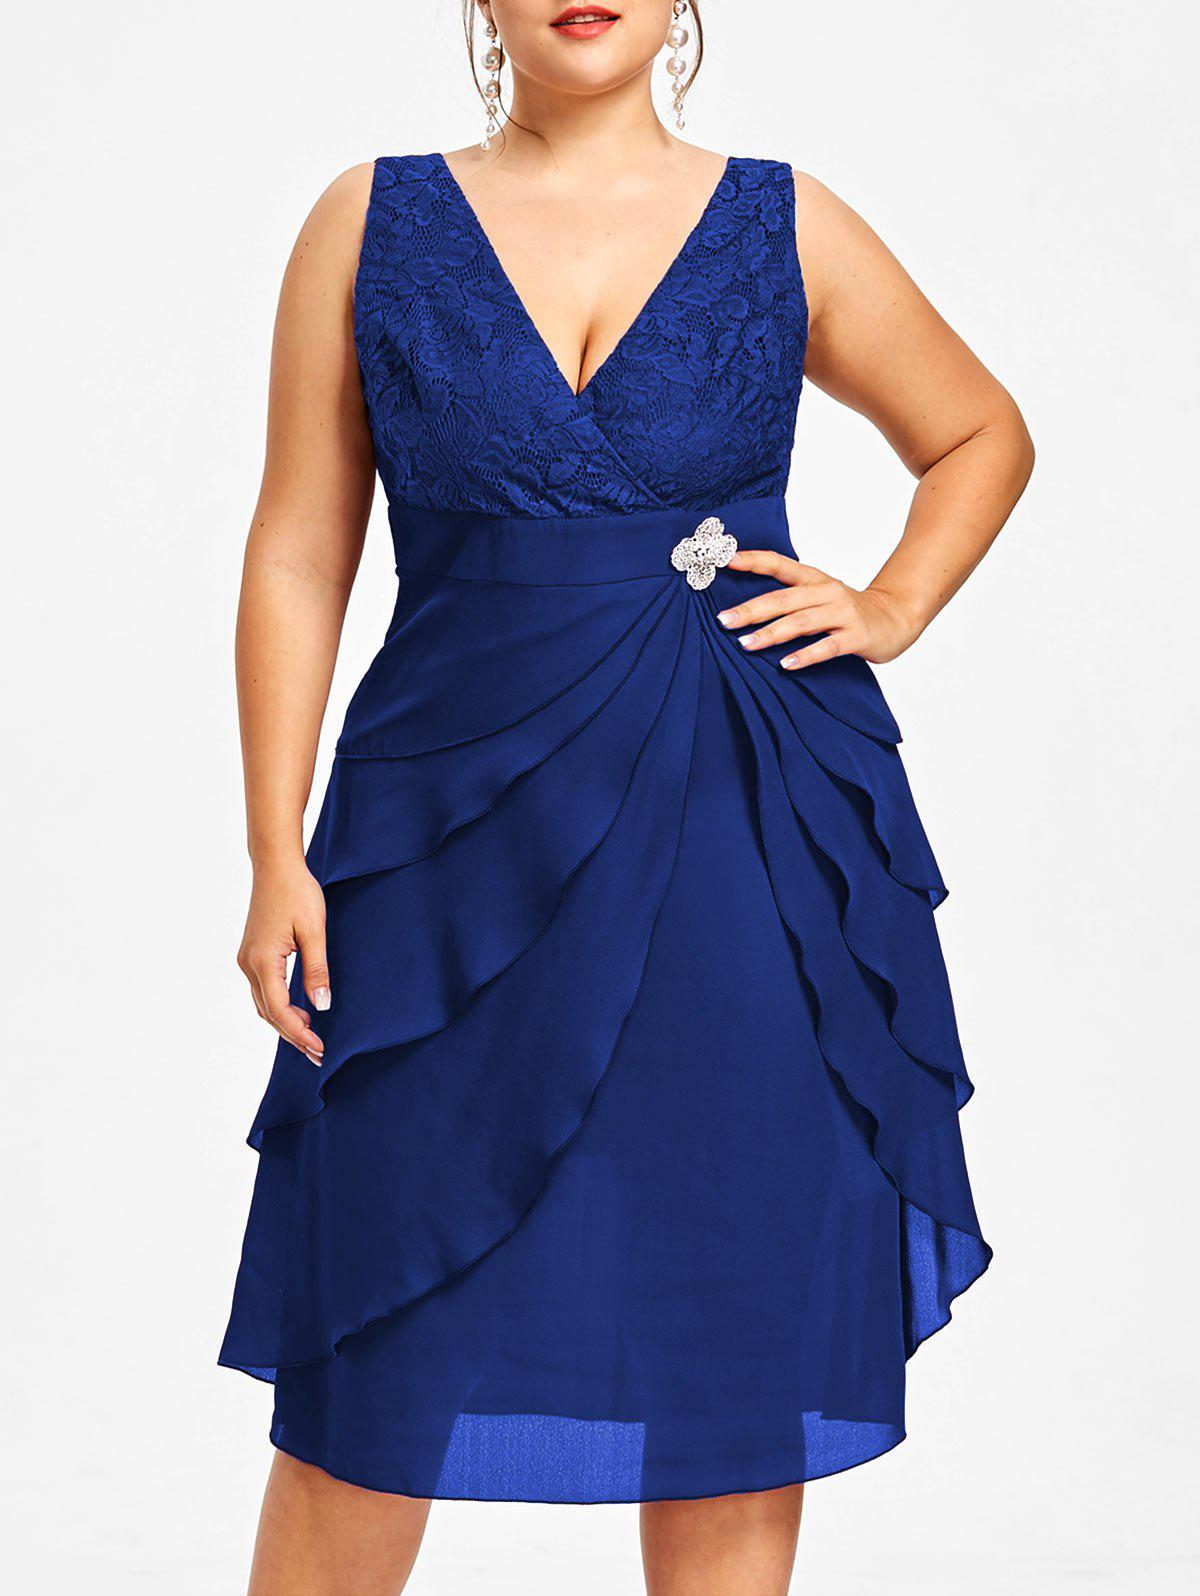 Fashion Plus Size Lace Trim Tiered Dress with Brooch